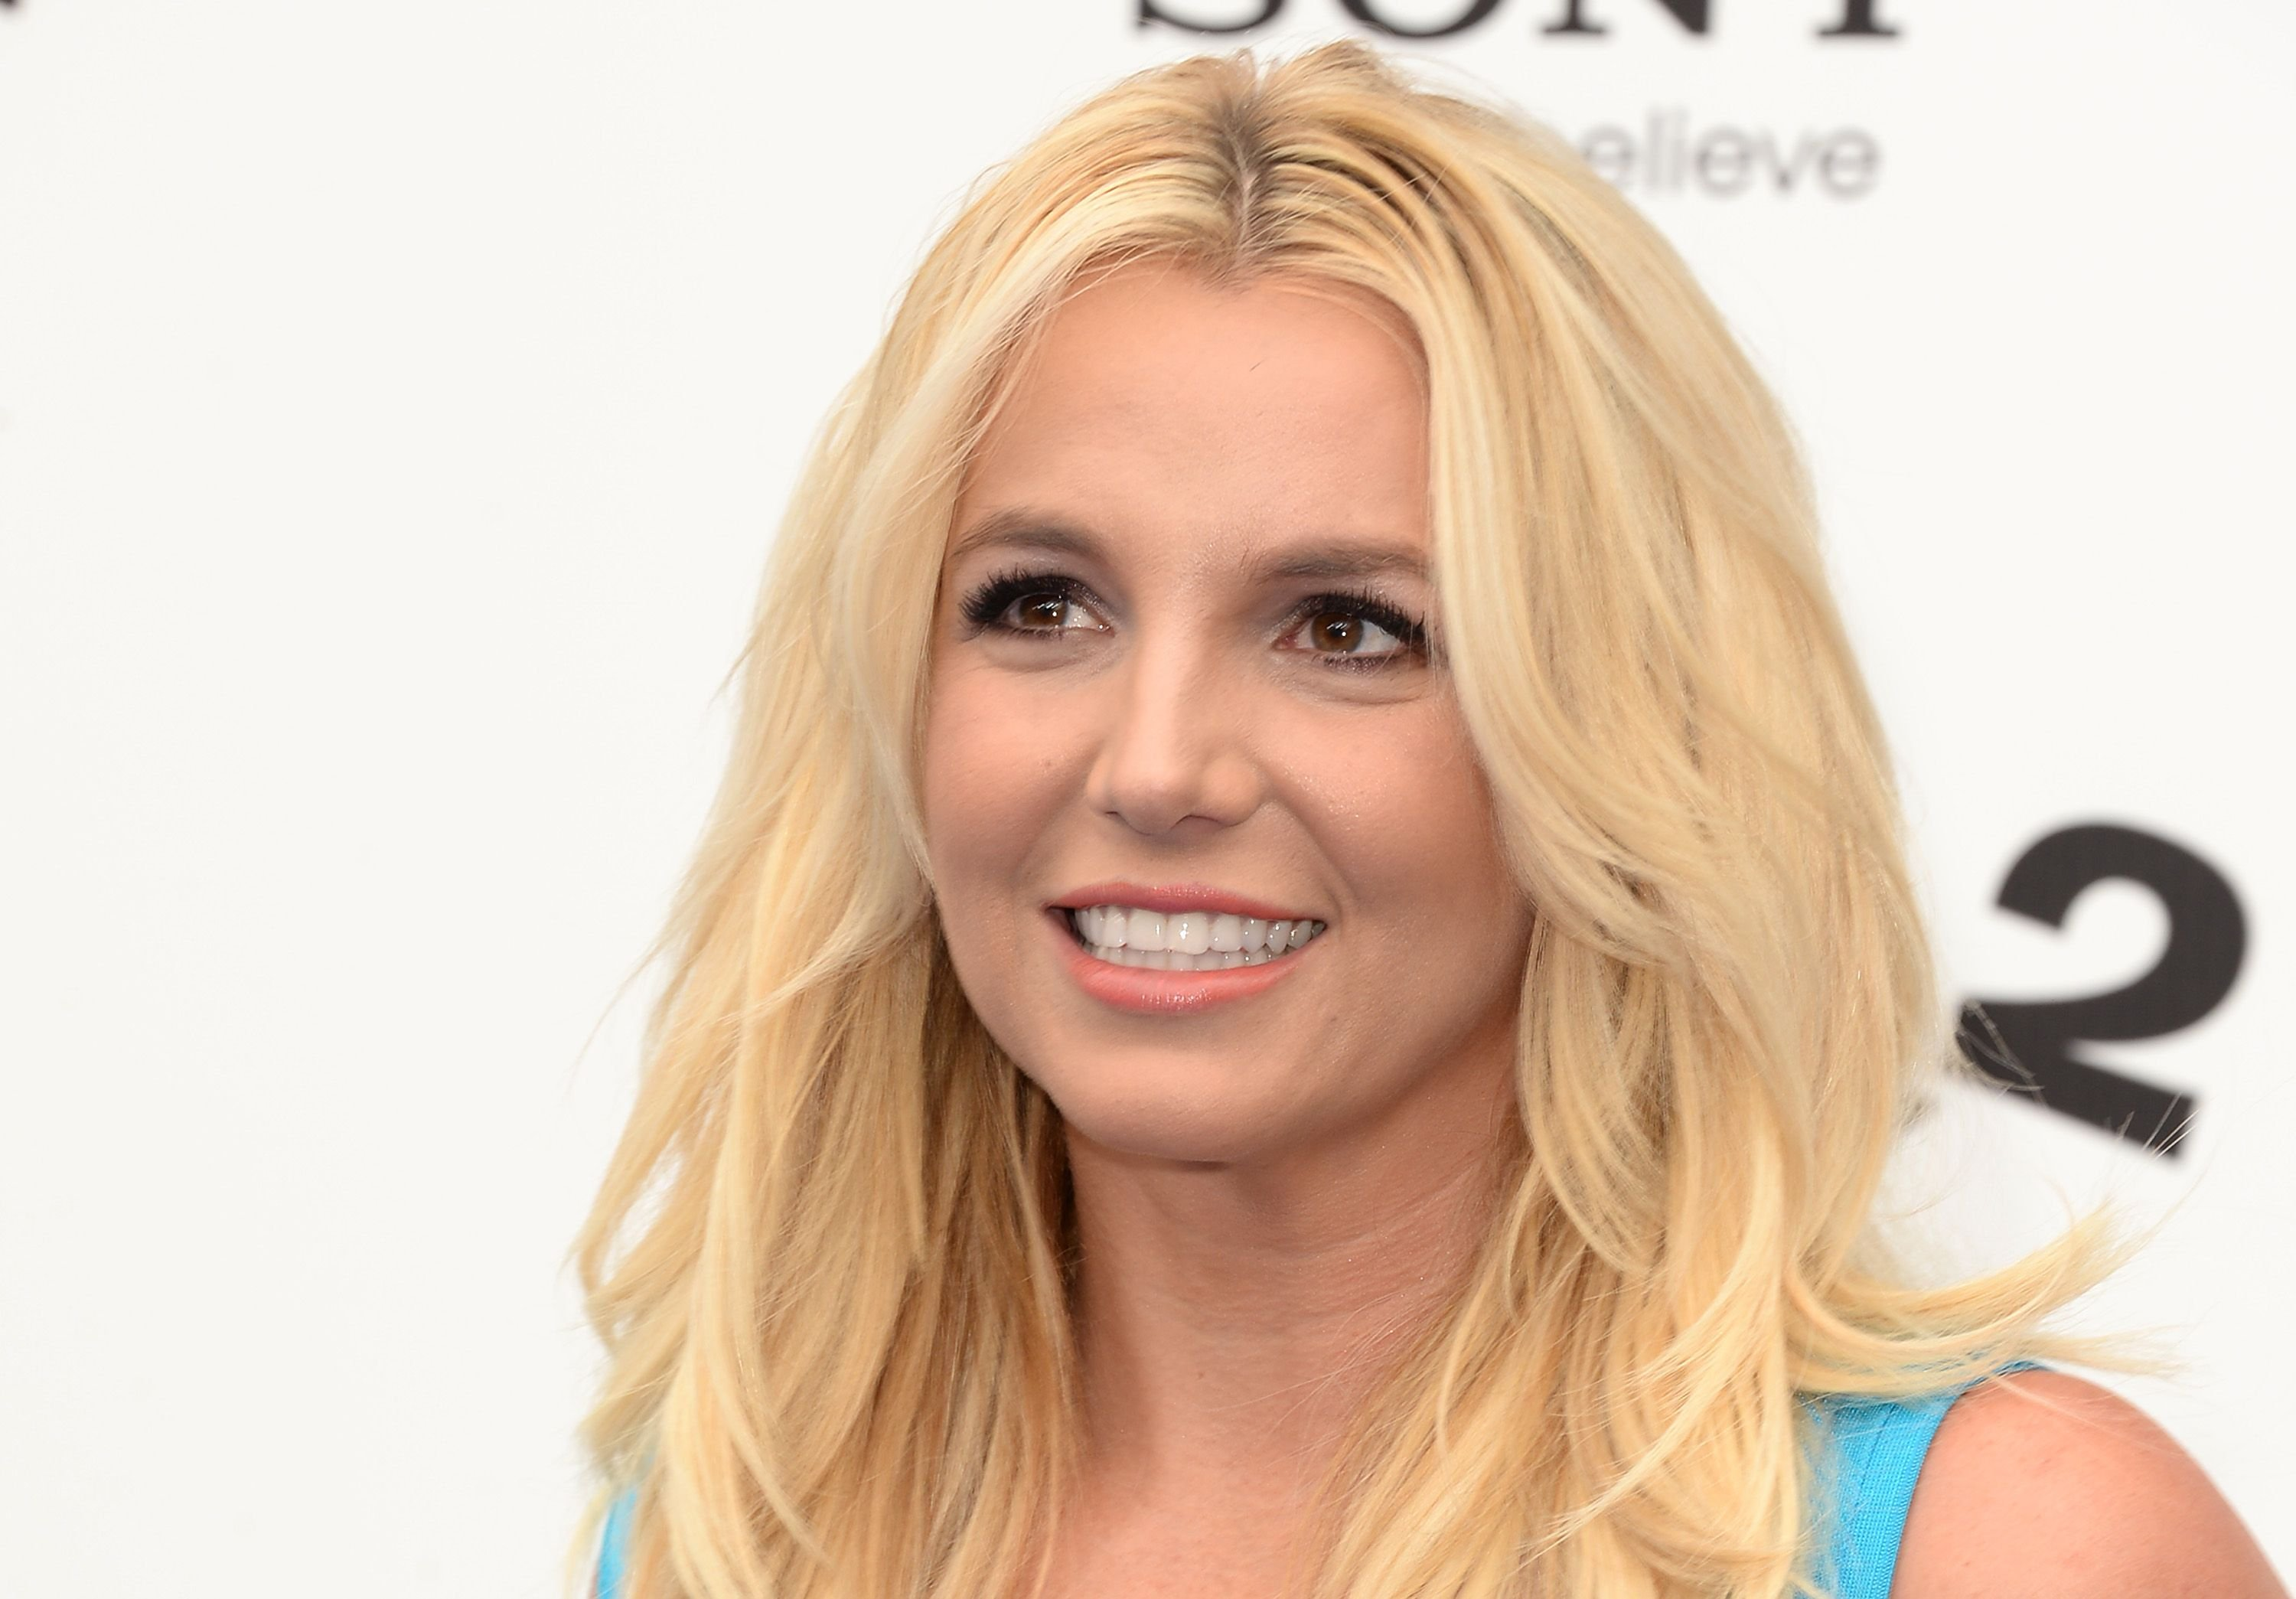 """Britney Spears at the premiere of Columbia Pictures' """"Smurfs 2"""" on July 28, 2013 in Westwood, California   Photo: Getty Images"""